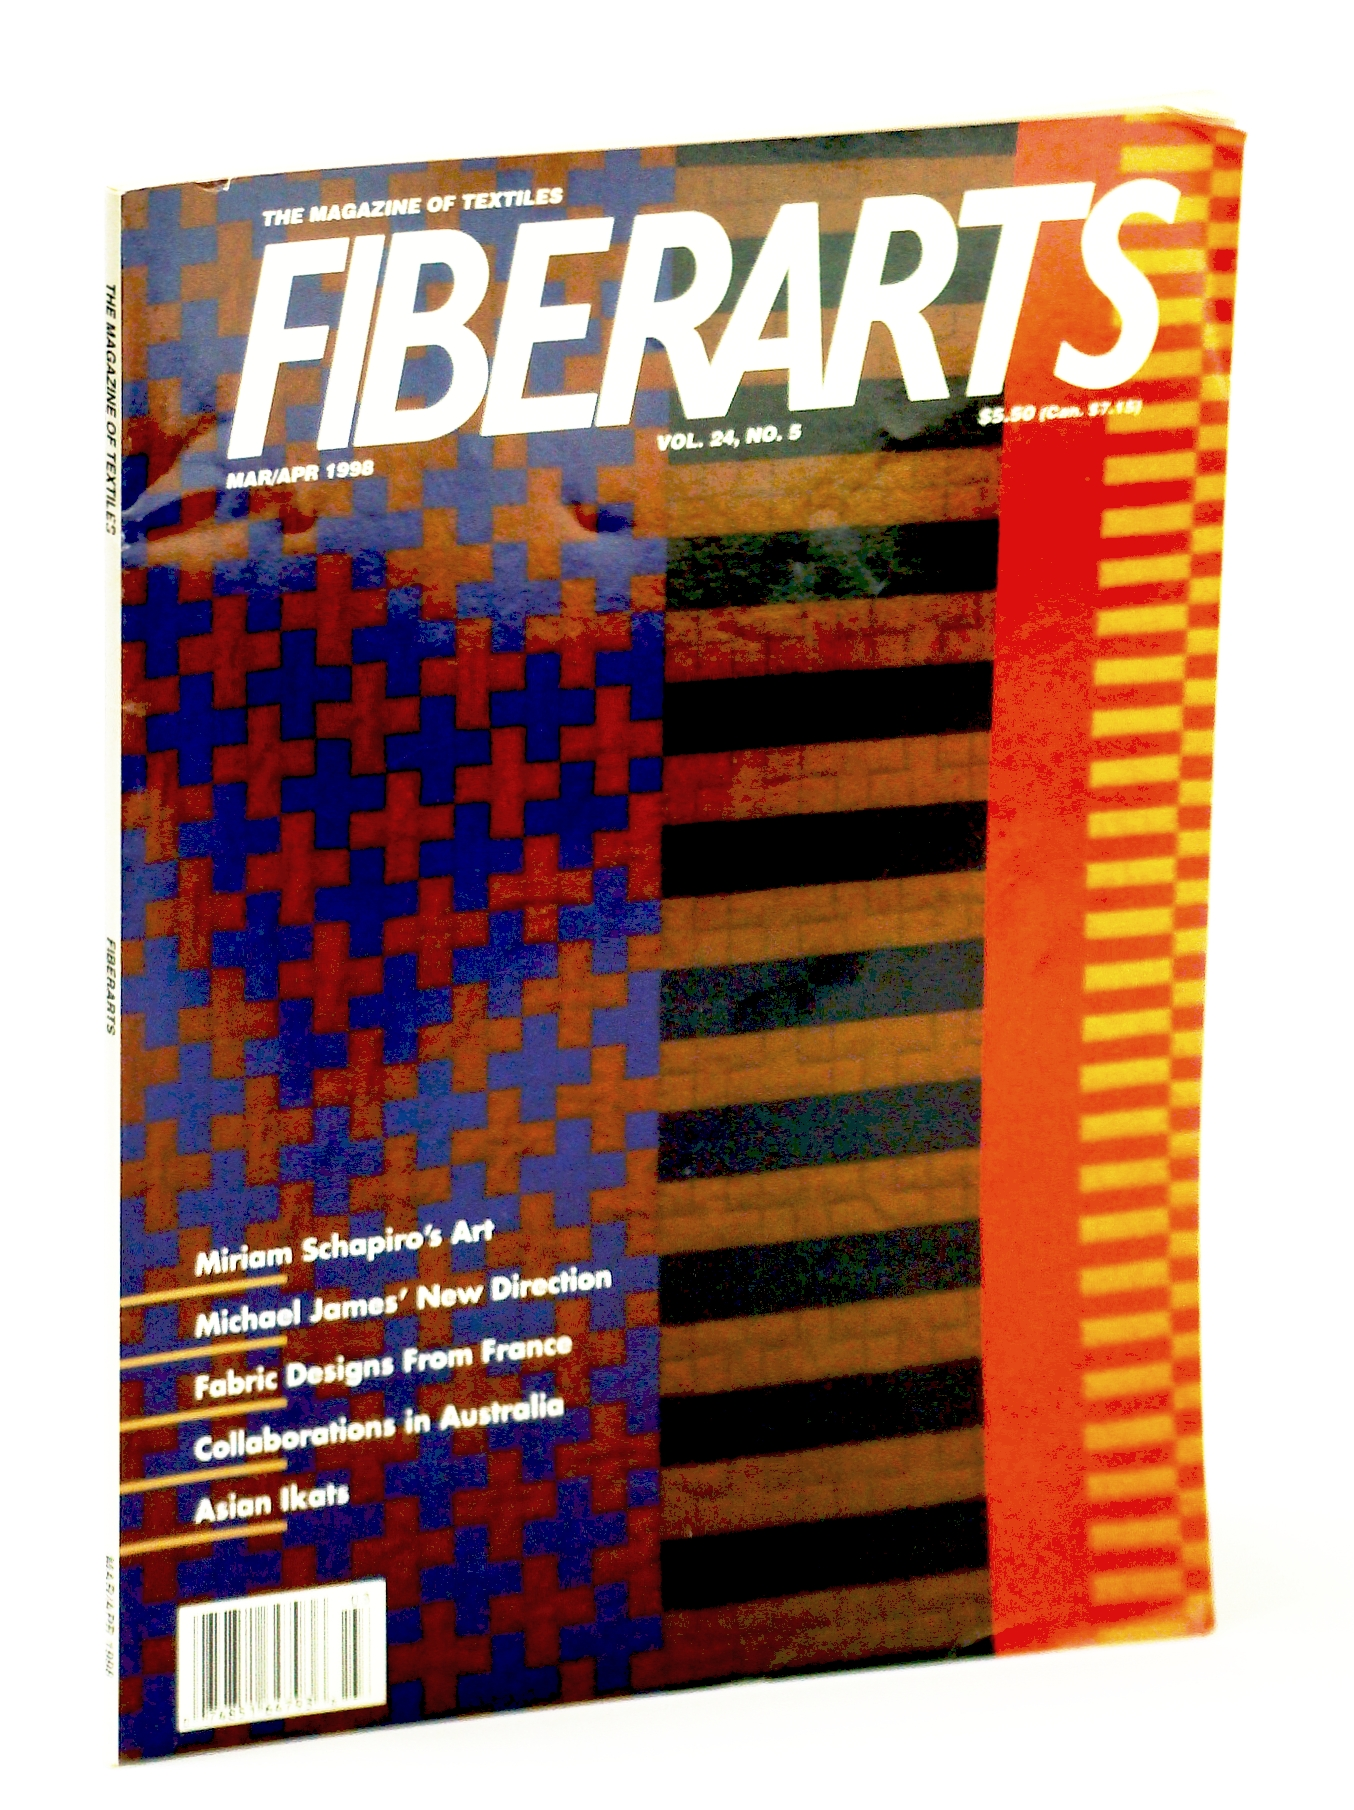 Image for Fiberarts, The Magazine of Textiles,  March / April (Mar. / Apr.) 1998: Miriam Schapiro / Michael James